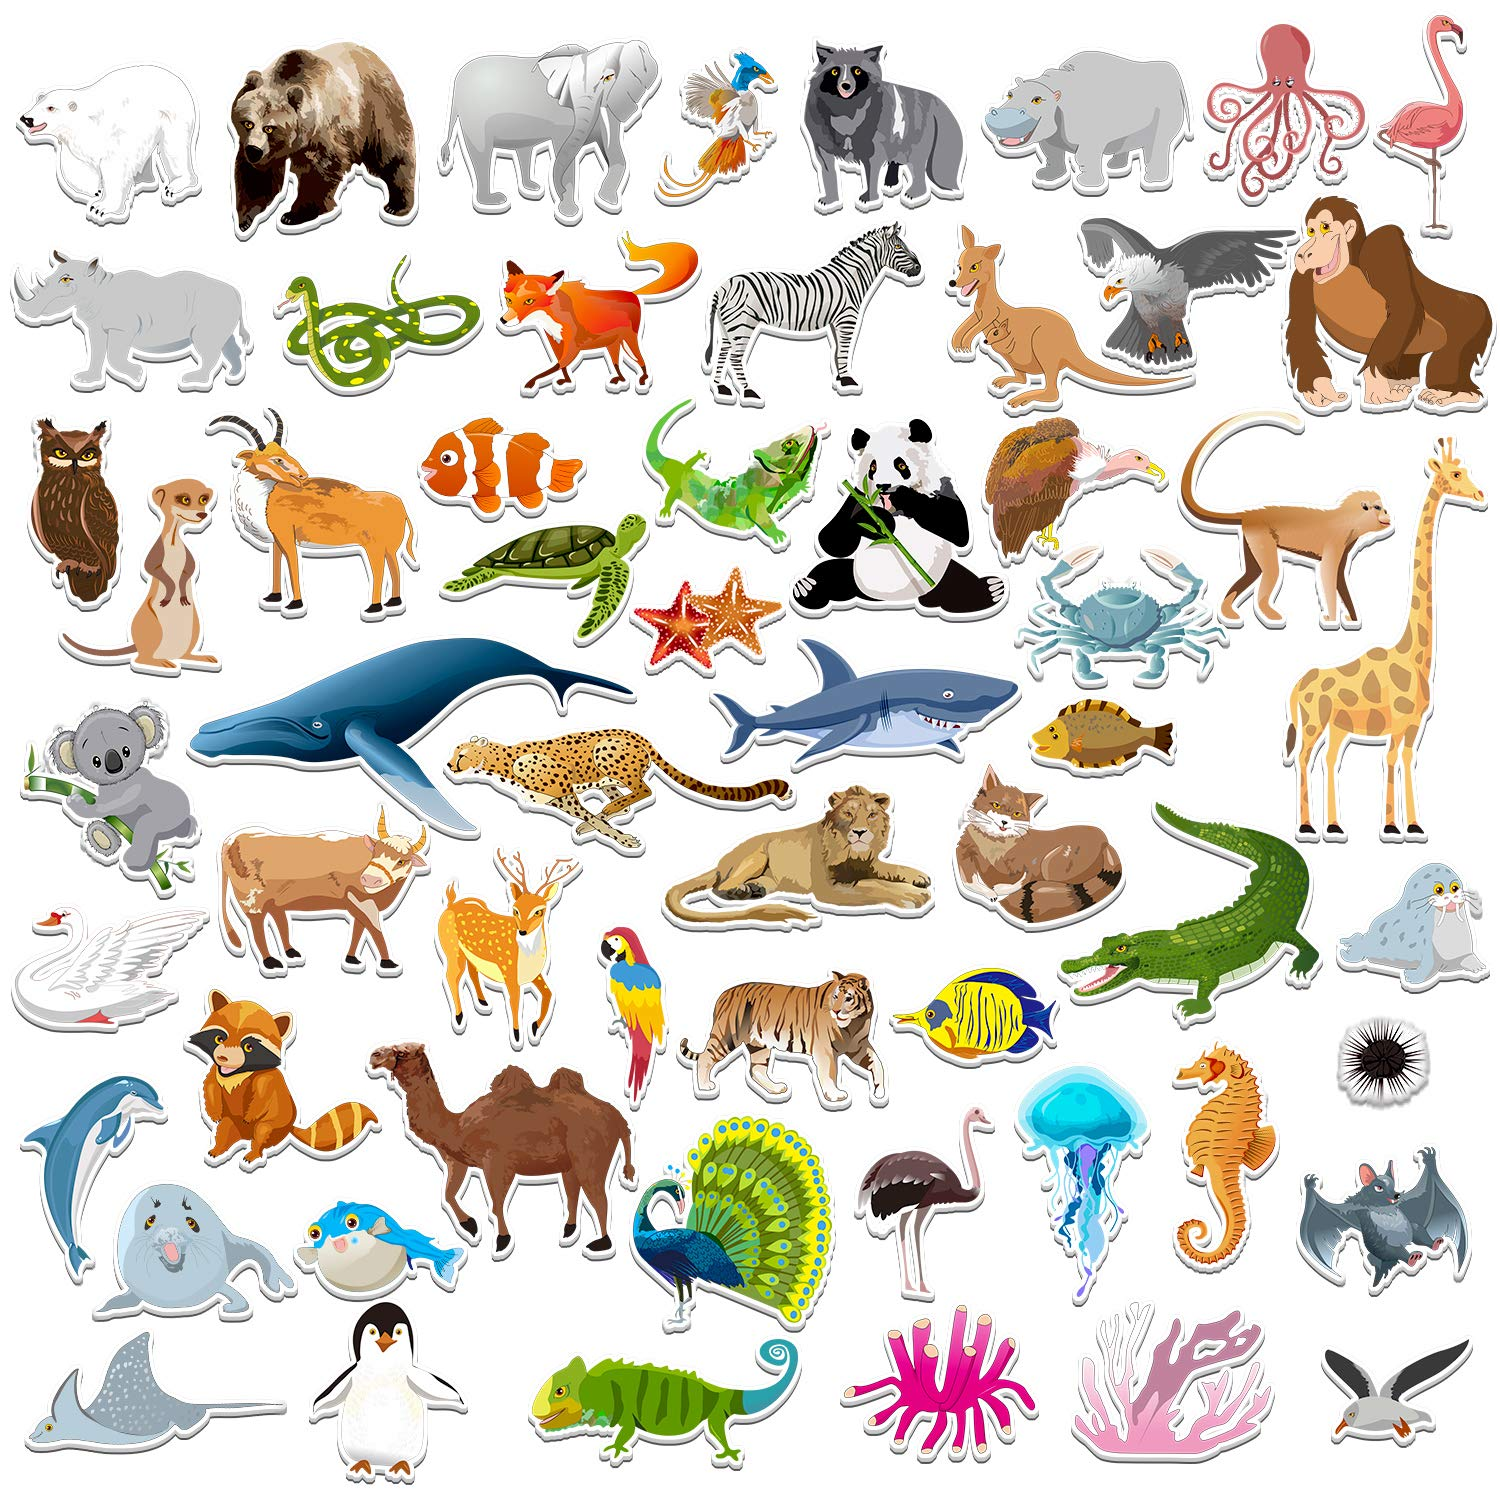 Spritegru 59 PCS Farm Animal Zoo Magnets for Toddlers Kids, Perfect Preschool Learning by Spritegru